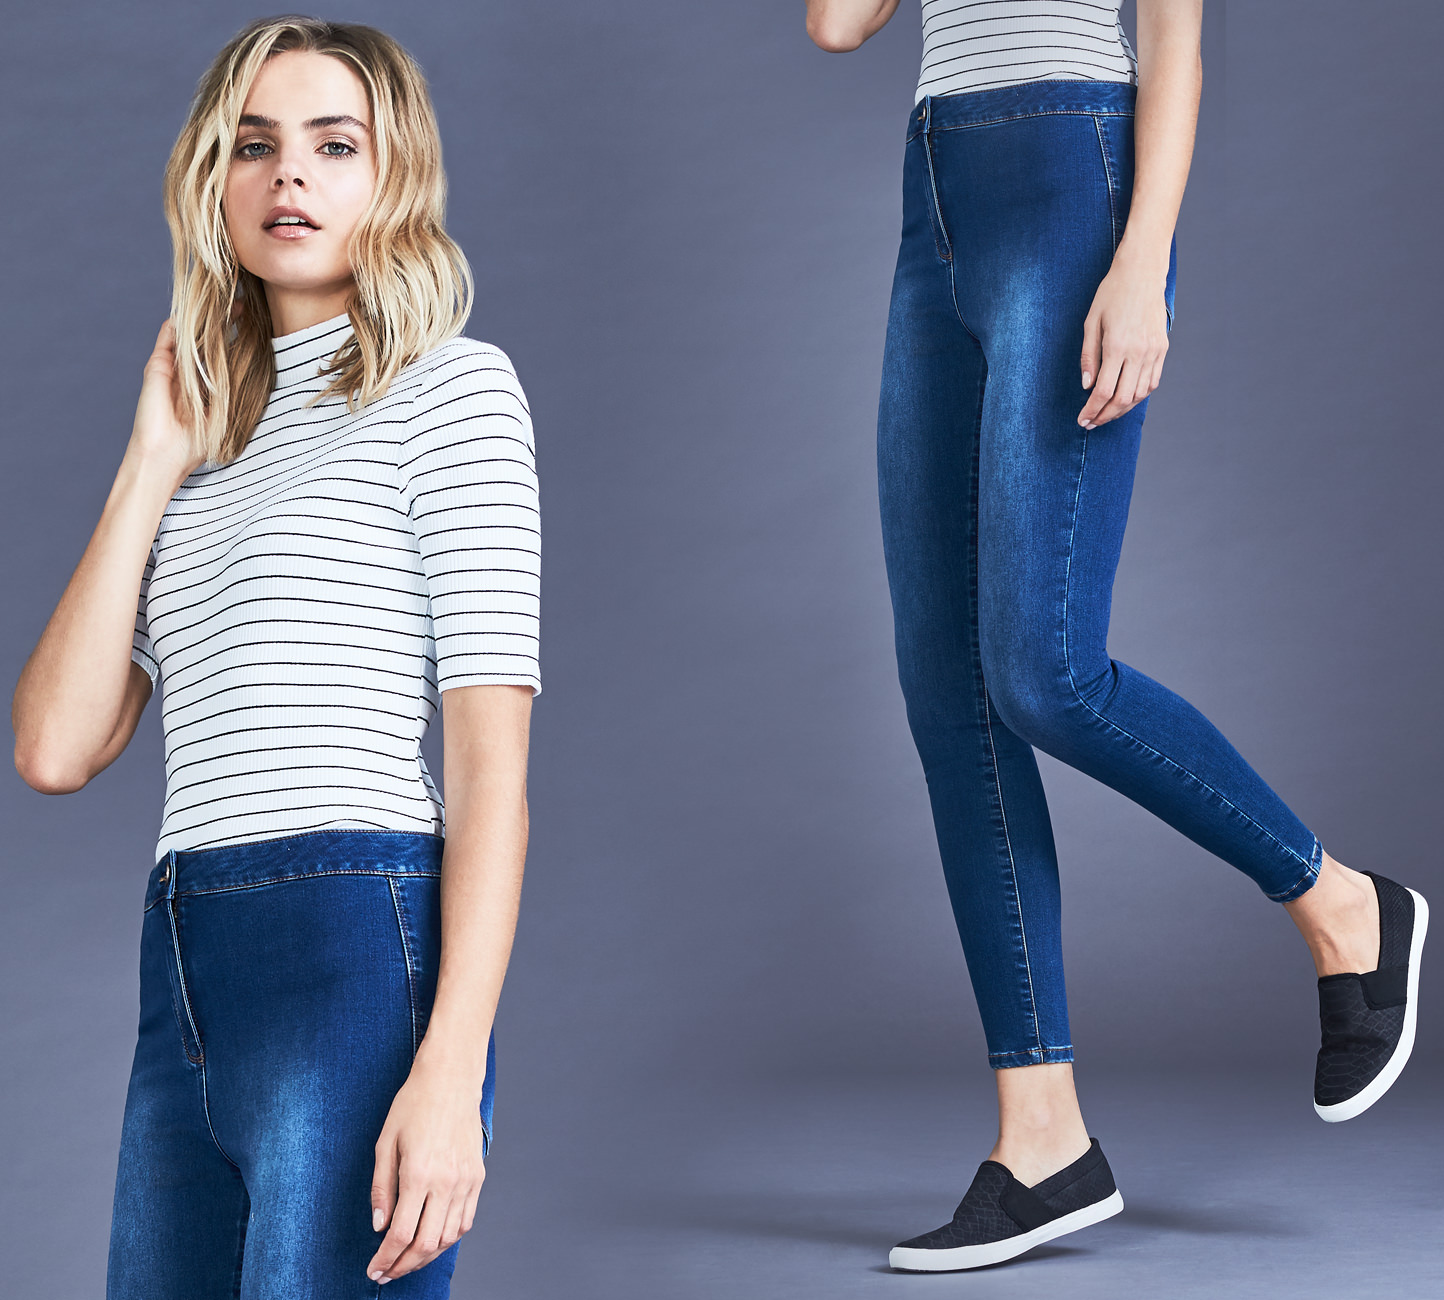 Women's High Waisted Jeans - Shop Now